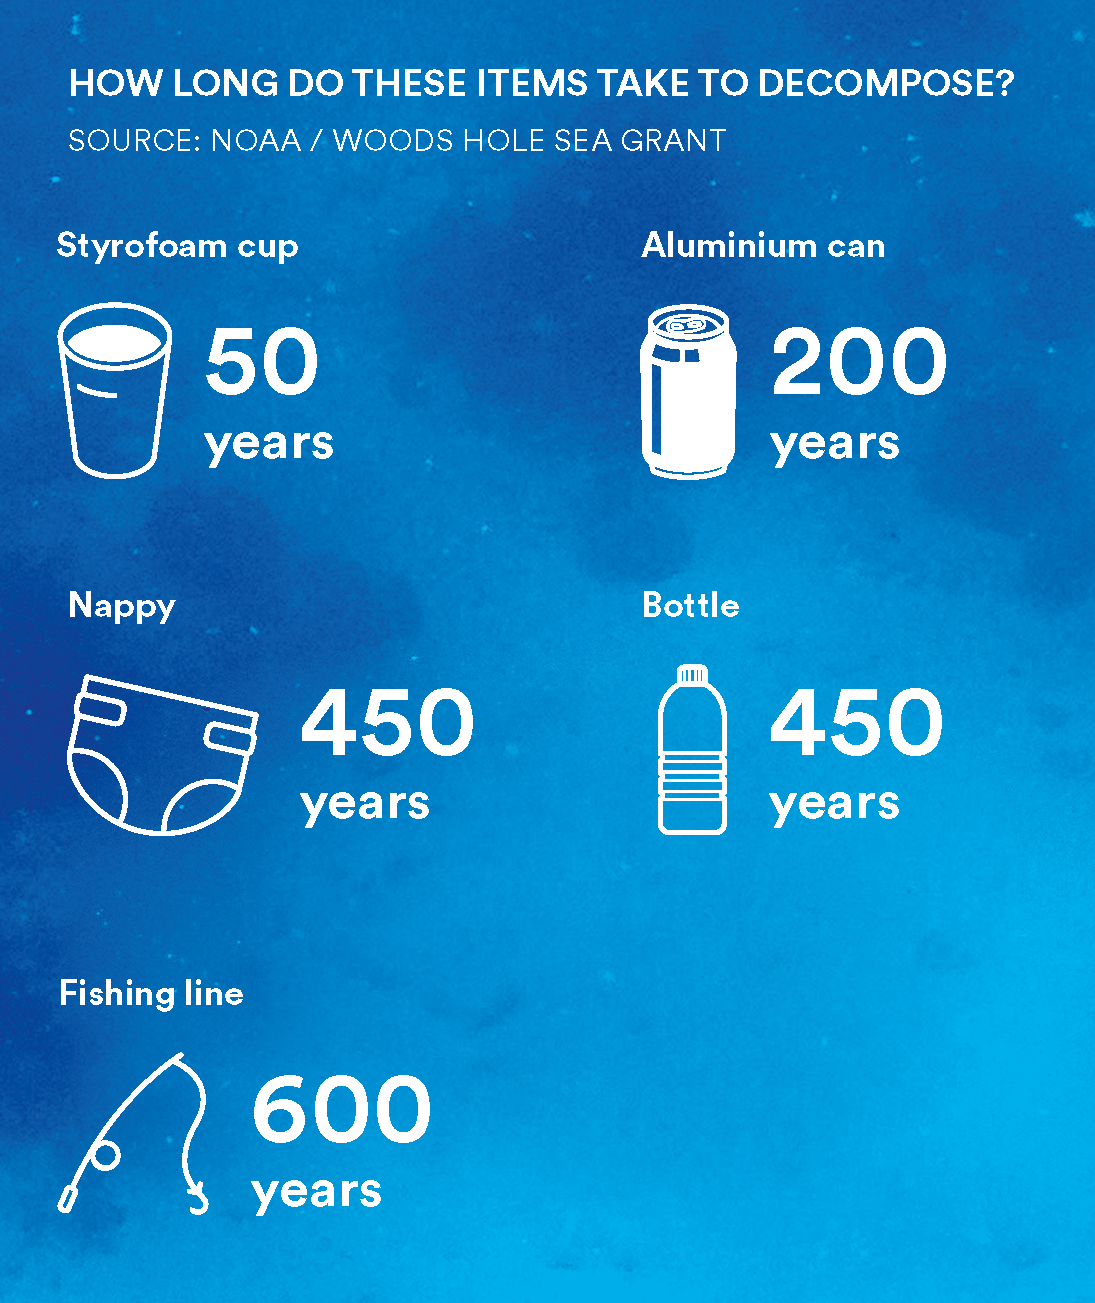 How long do these items take to decompose? Styrofoam cup - 50 years, nappy - 450 years